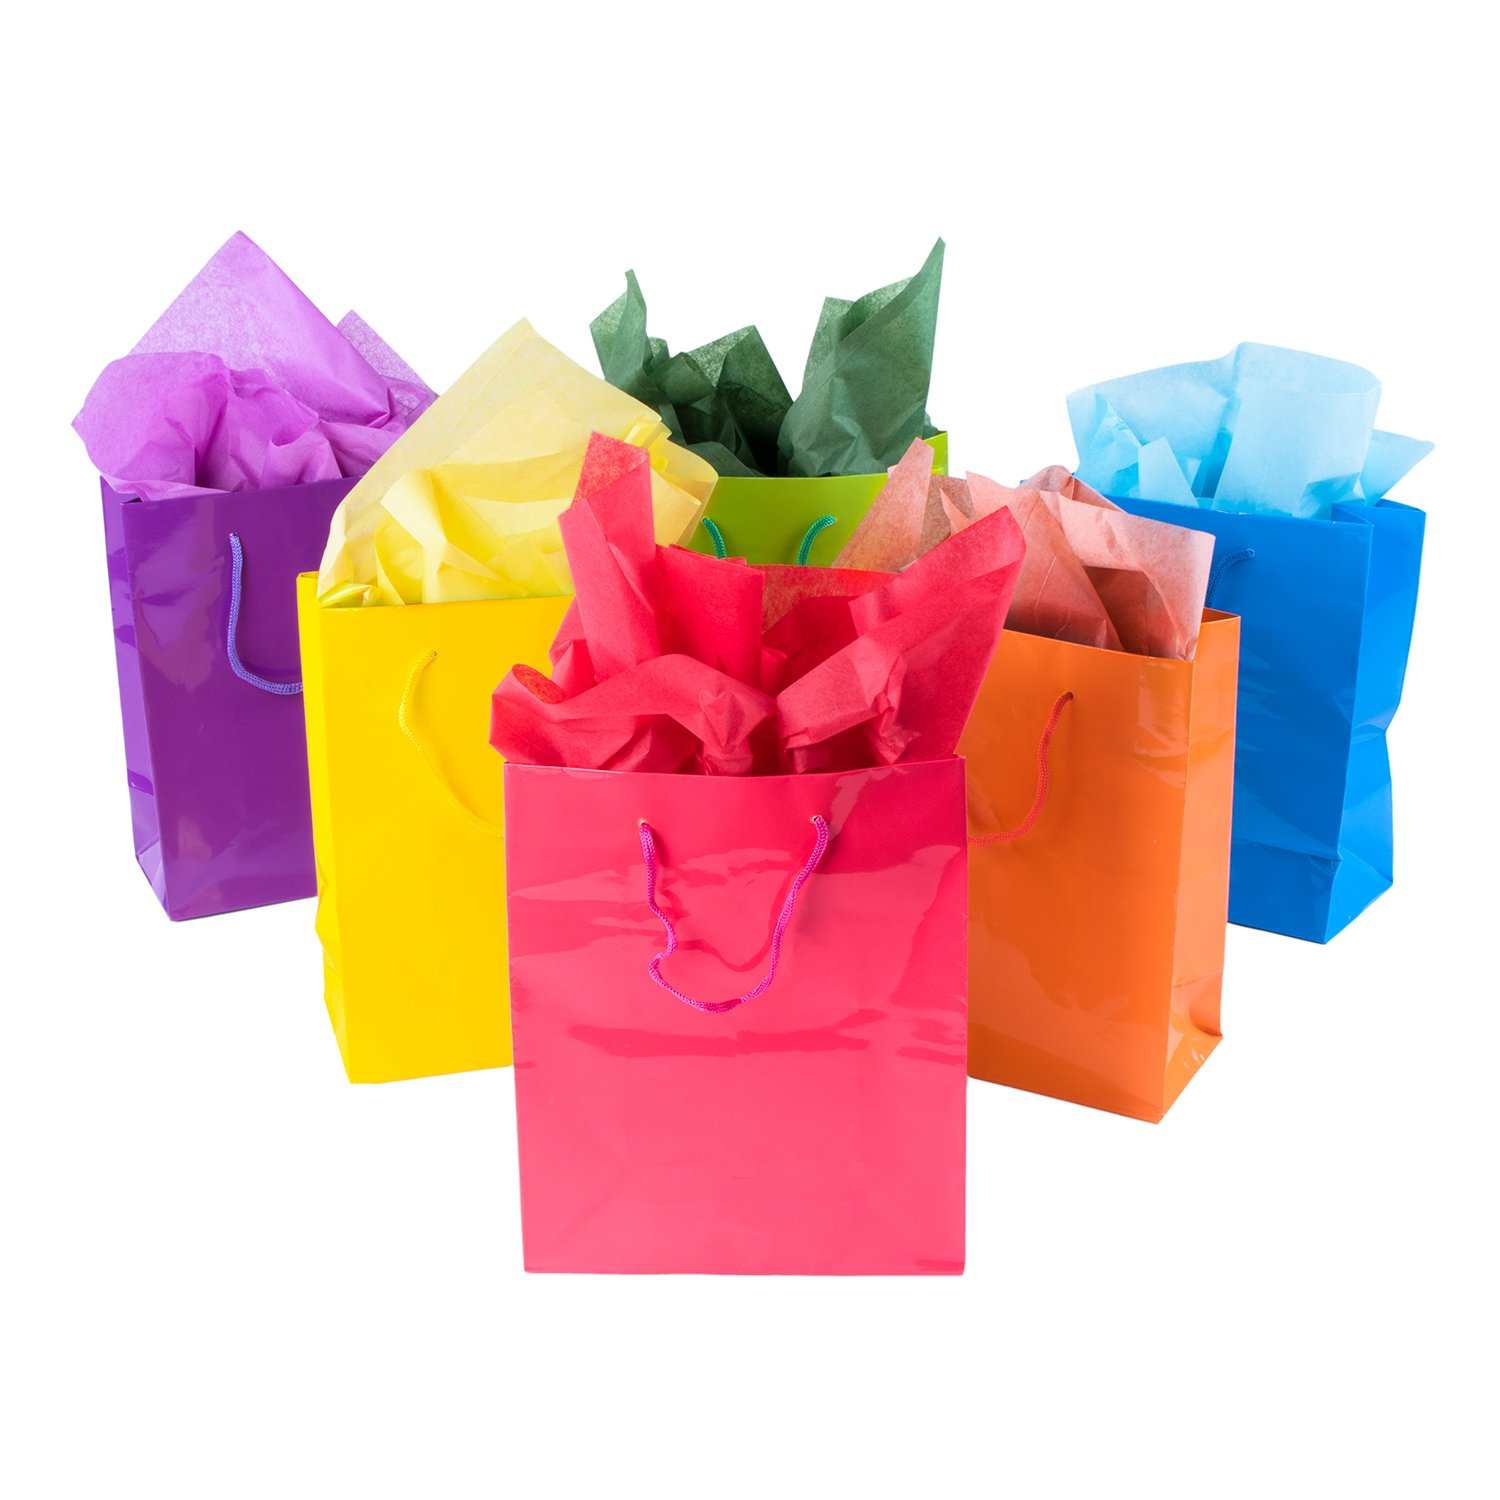 Neon Colored Blank Paper Party Gift Bags Rainbow Assortment with String Handles for Birthday Favors, Snacks, Decoration, Arts & Crafts, Event Supplies (12 Bags) by Super Z Outlet (Large)